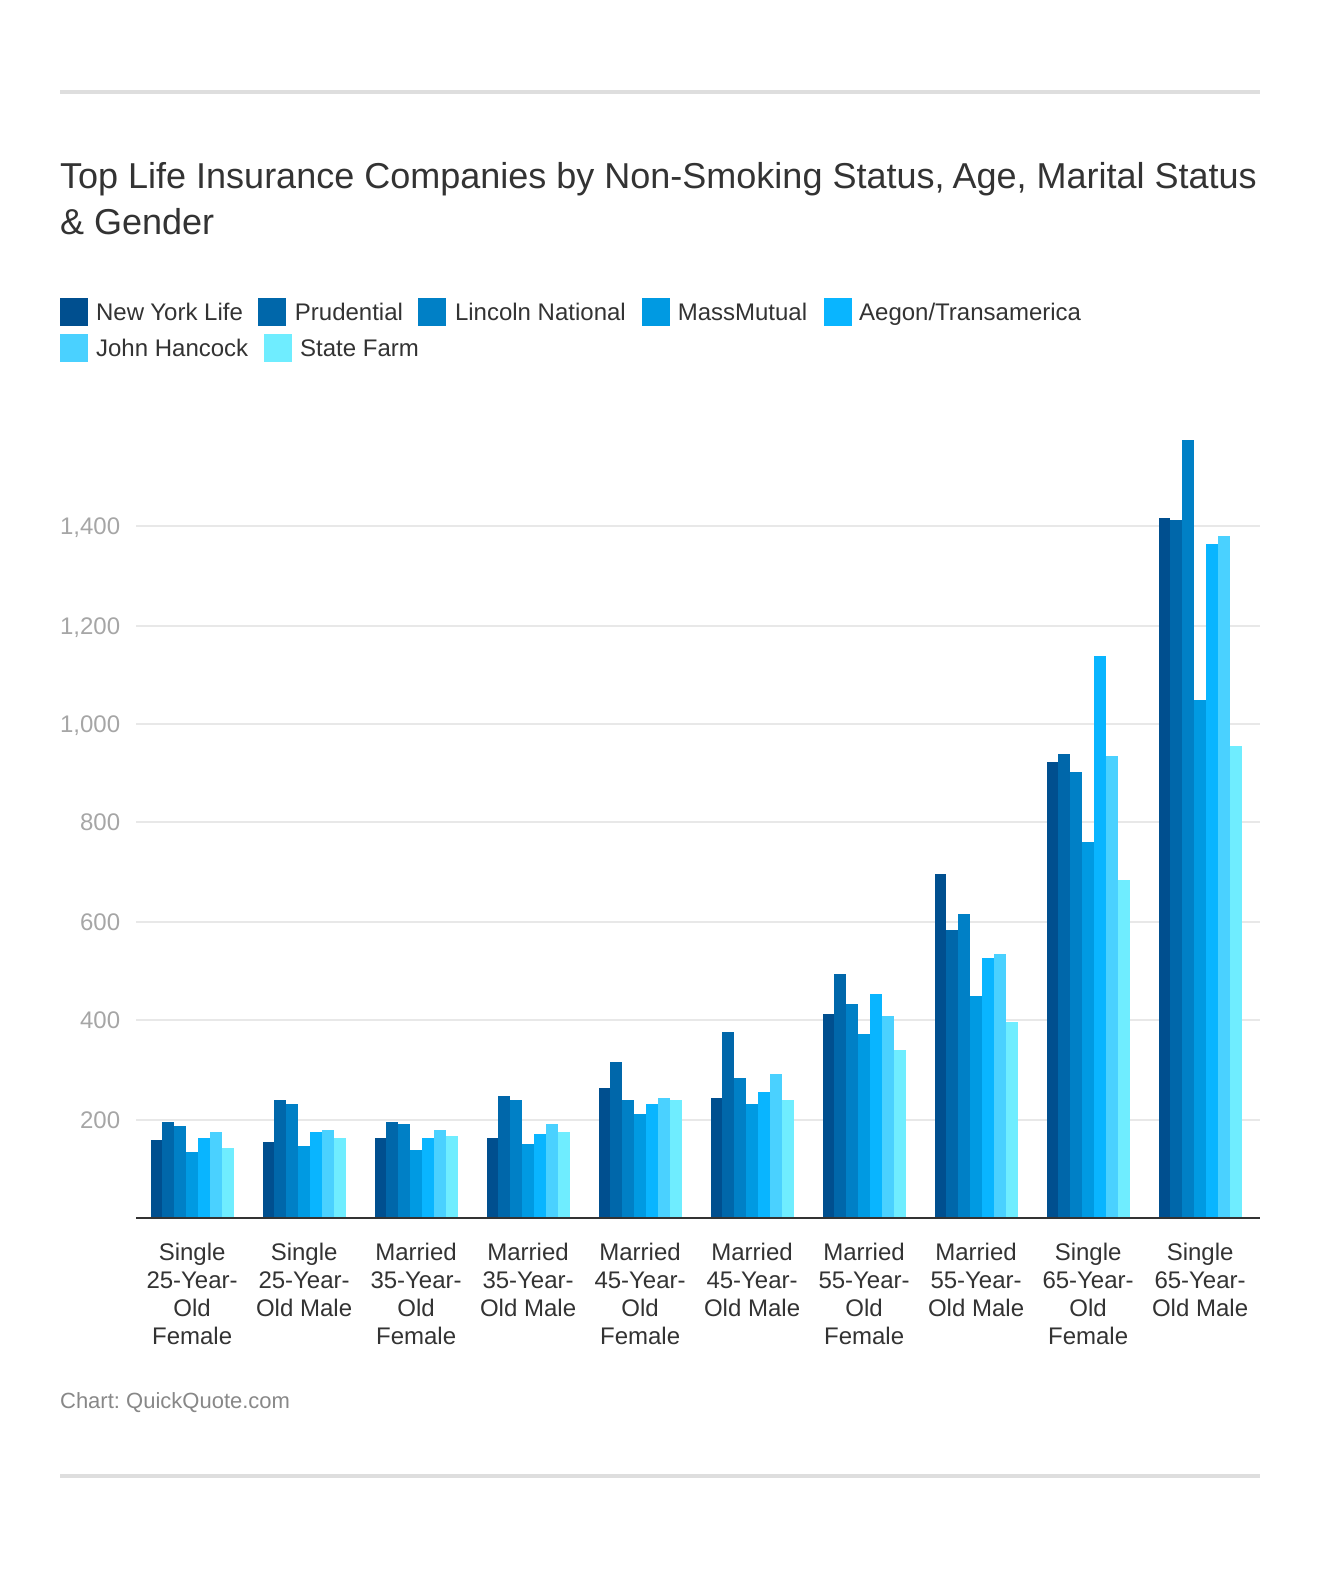 Top Life Insurance Companies by Non-Smoking Status, Age, Marital Status & Gender